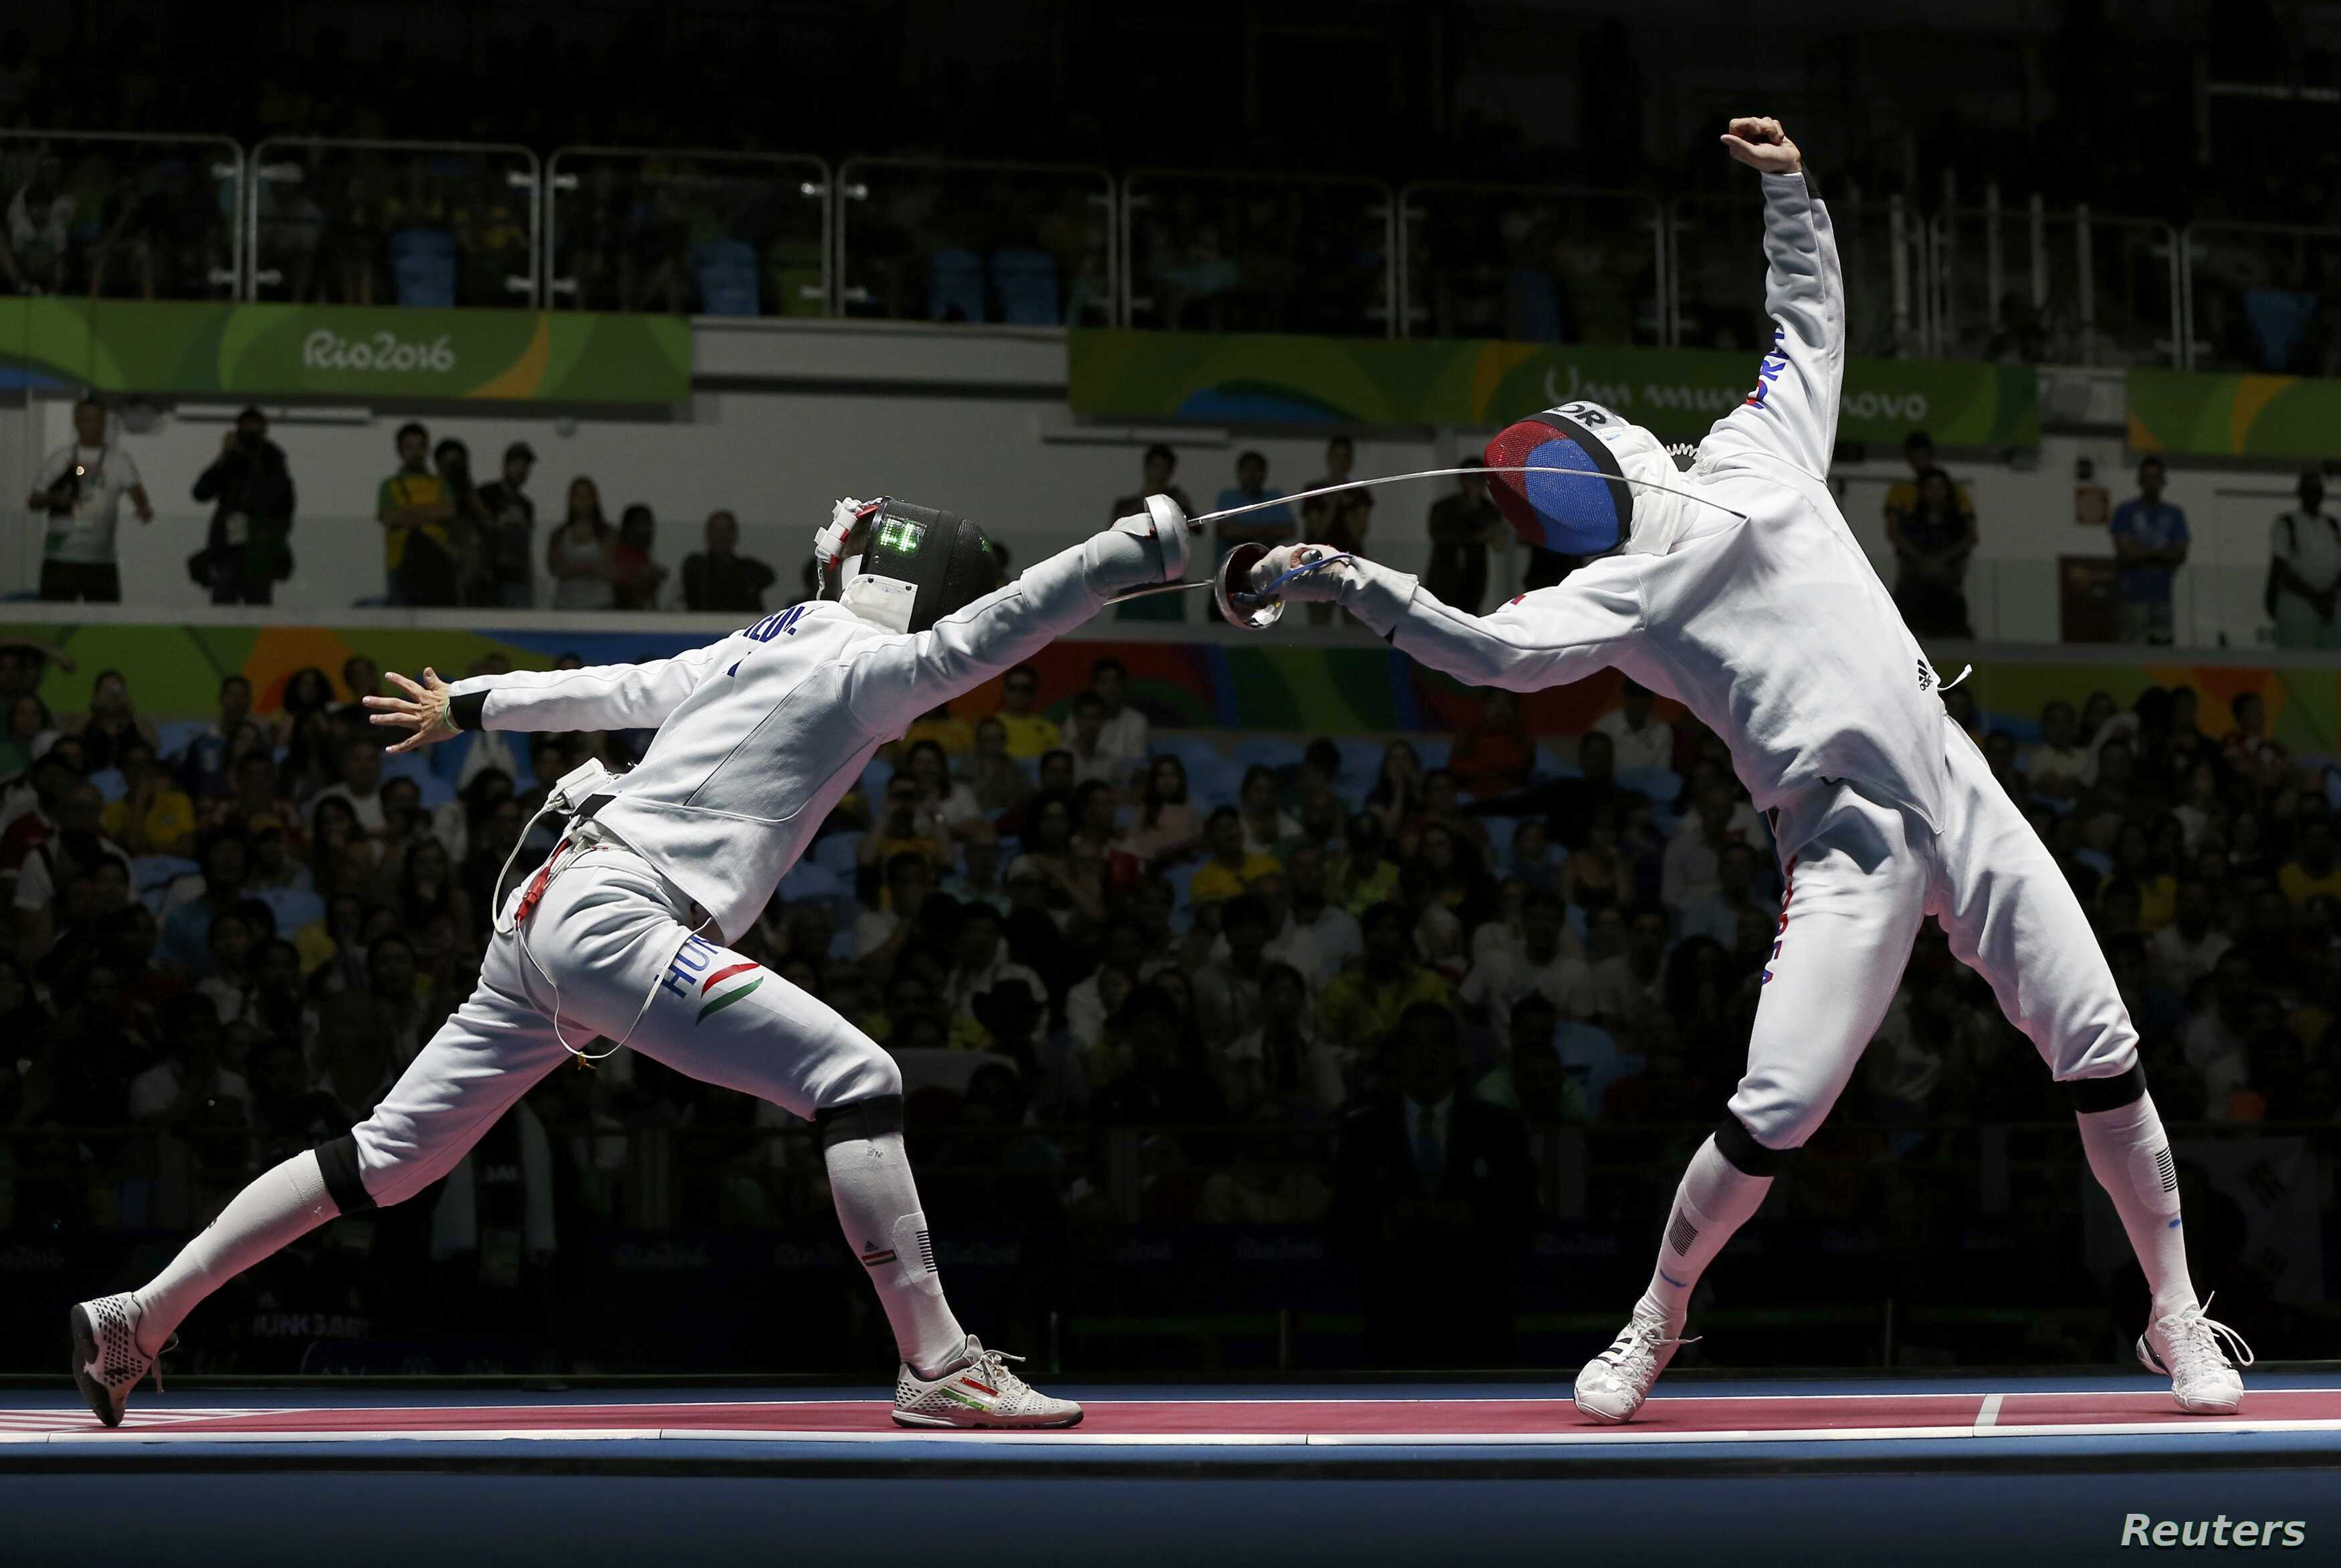 Andras Redli (HUN) of Hungary competes with Jung Jin-Sun (KOR) of South Korea in the Men's Epee Team Quarterfinals, Aug. 14, 2016.